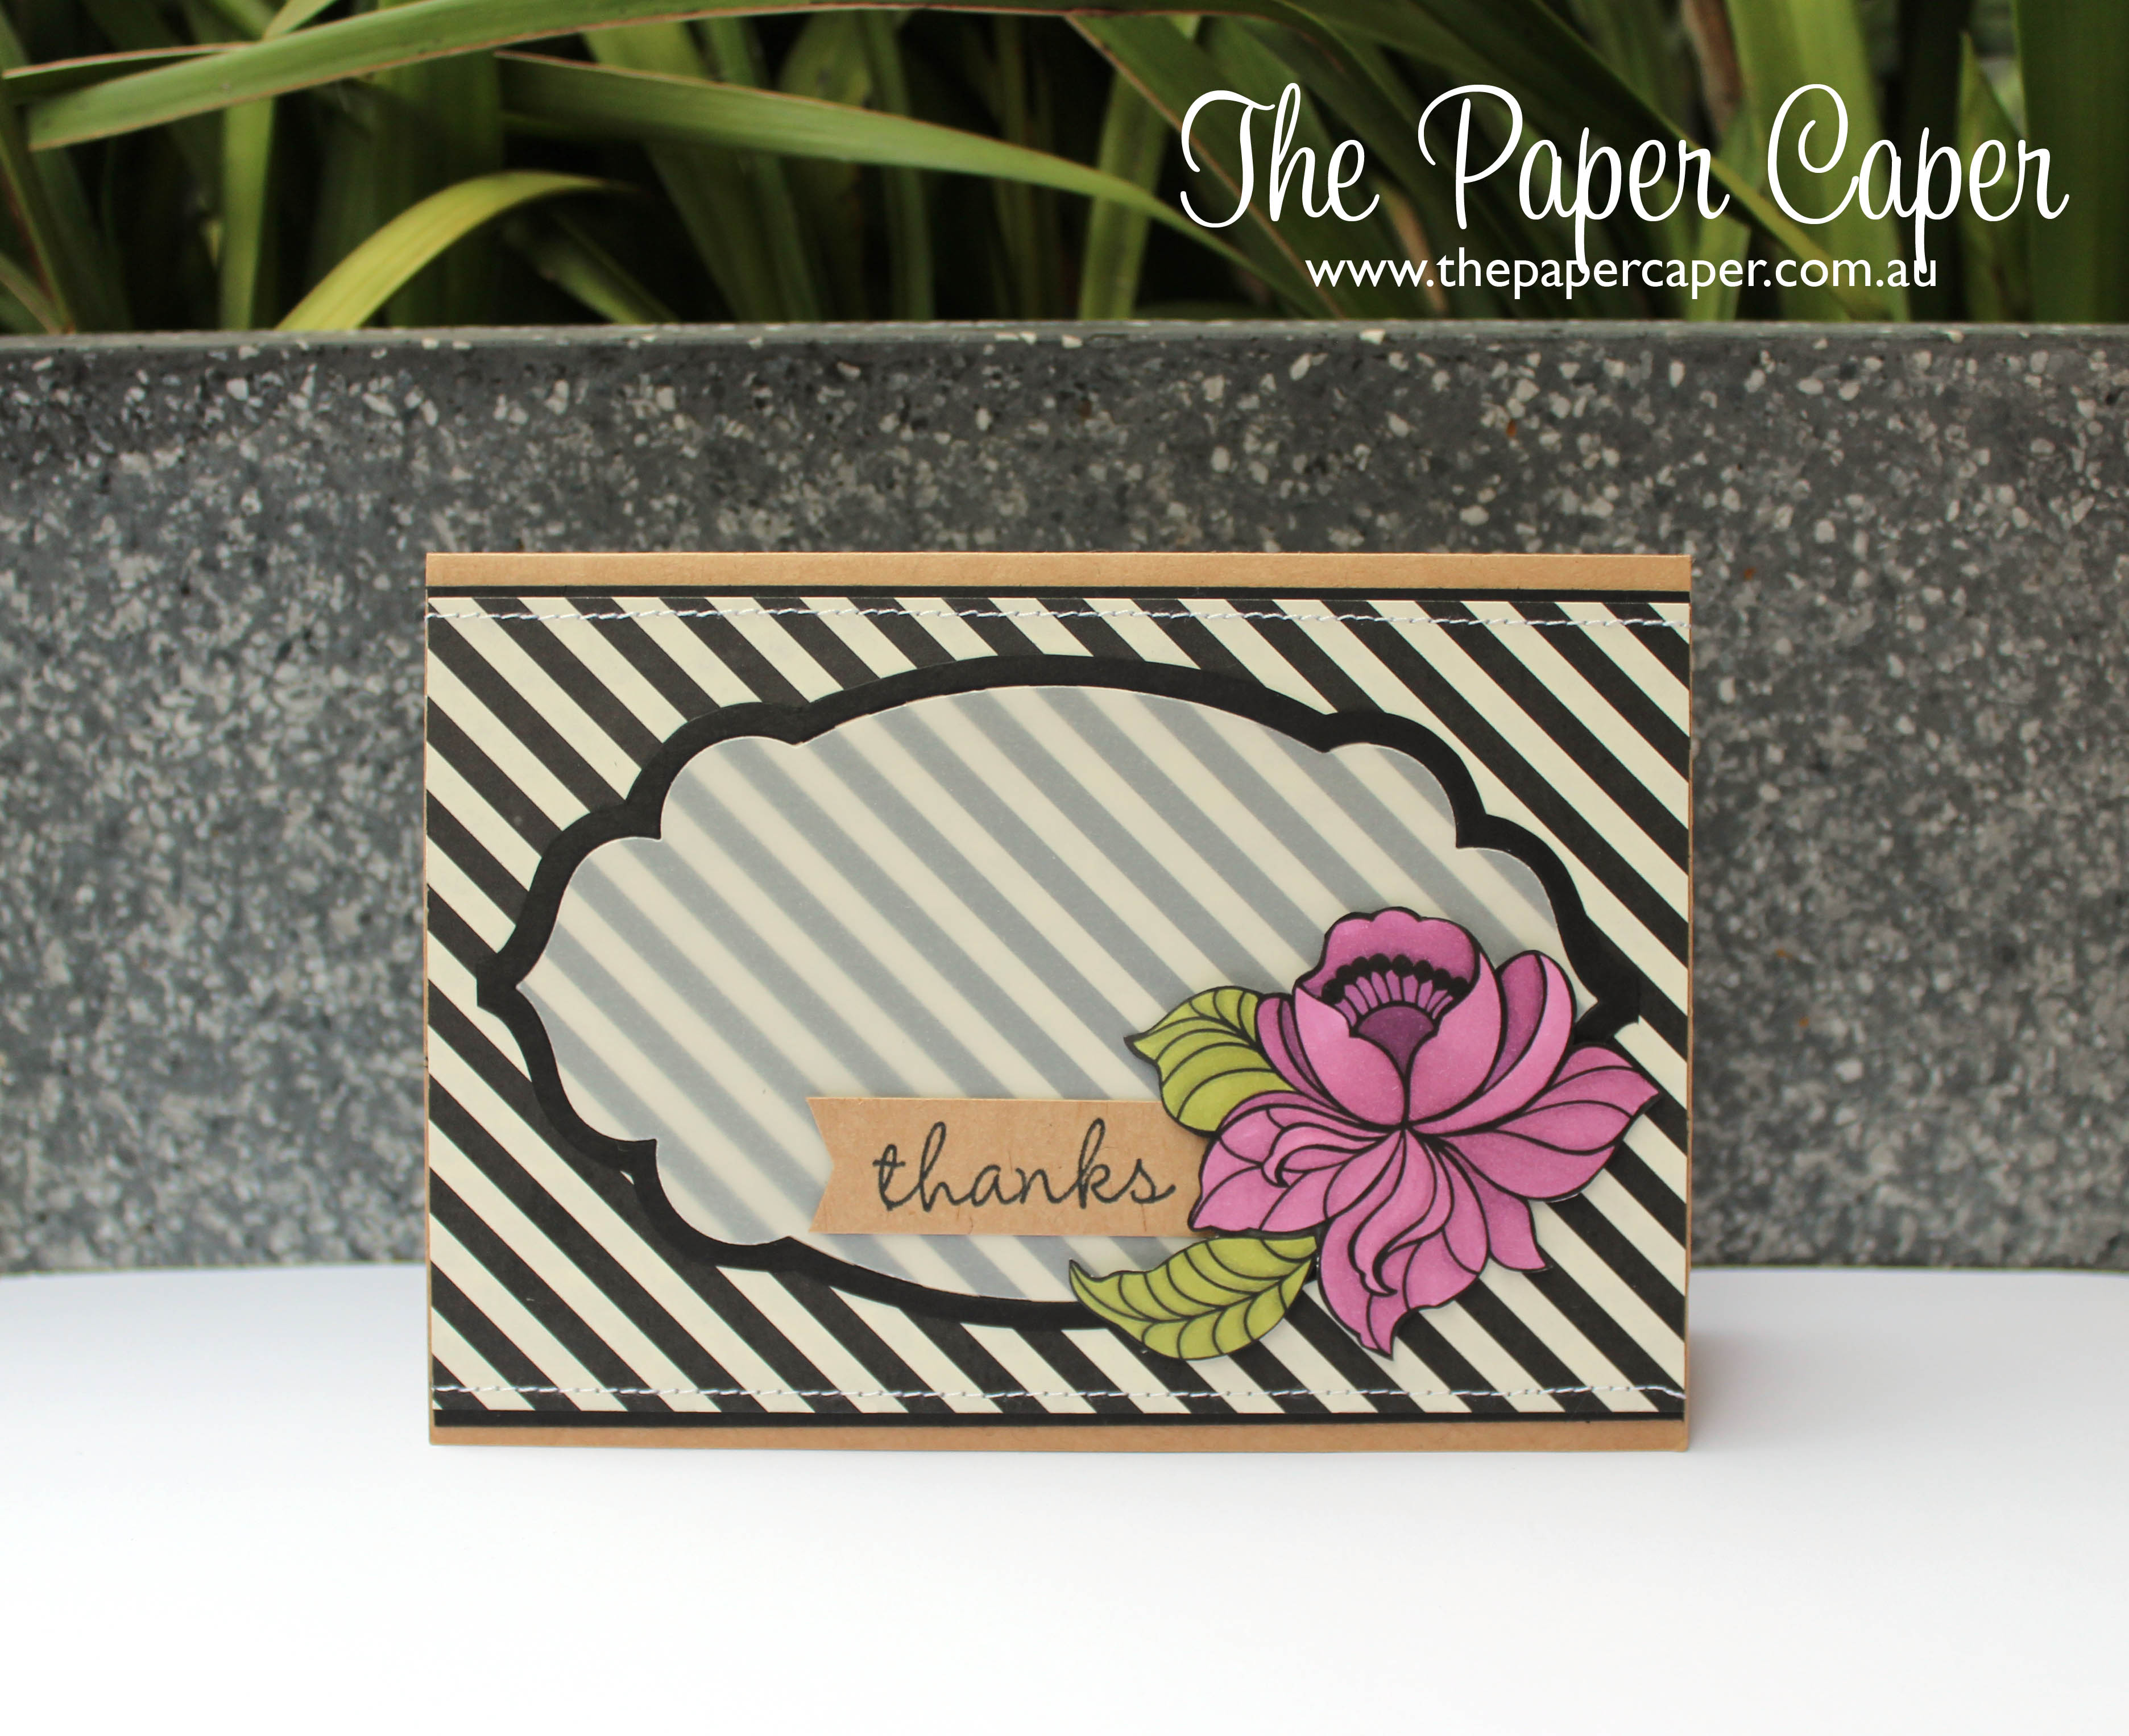 Blendabilities & Blooms for CASEing the Catty Challenges. Details @ www.thepapercaper.com.au